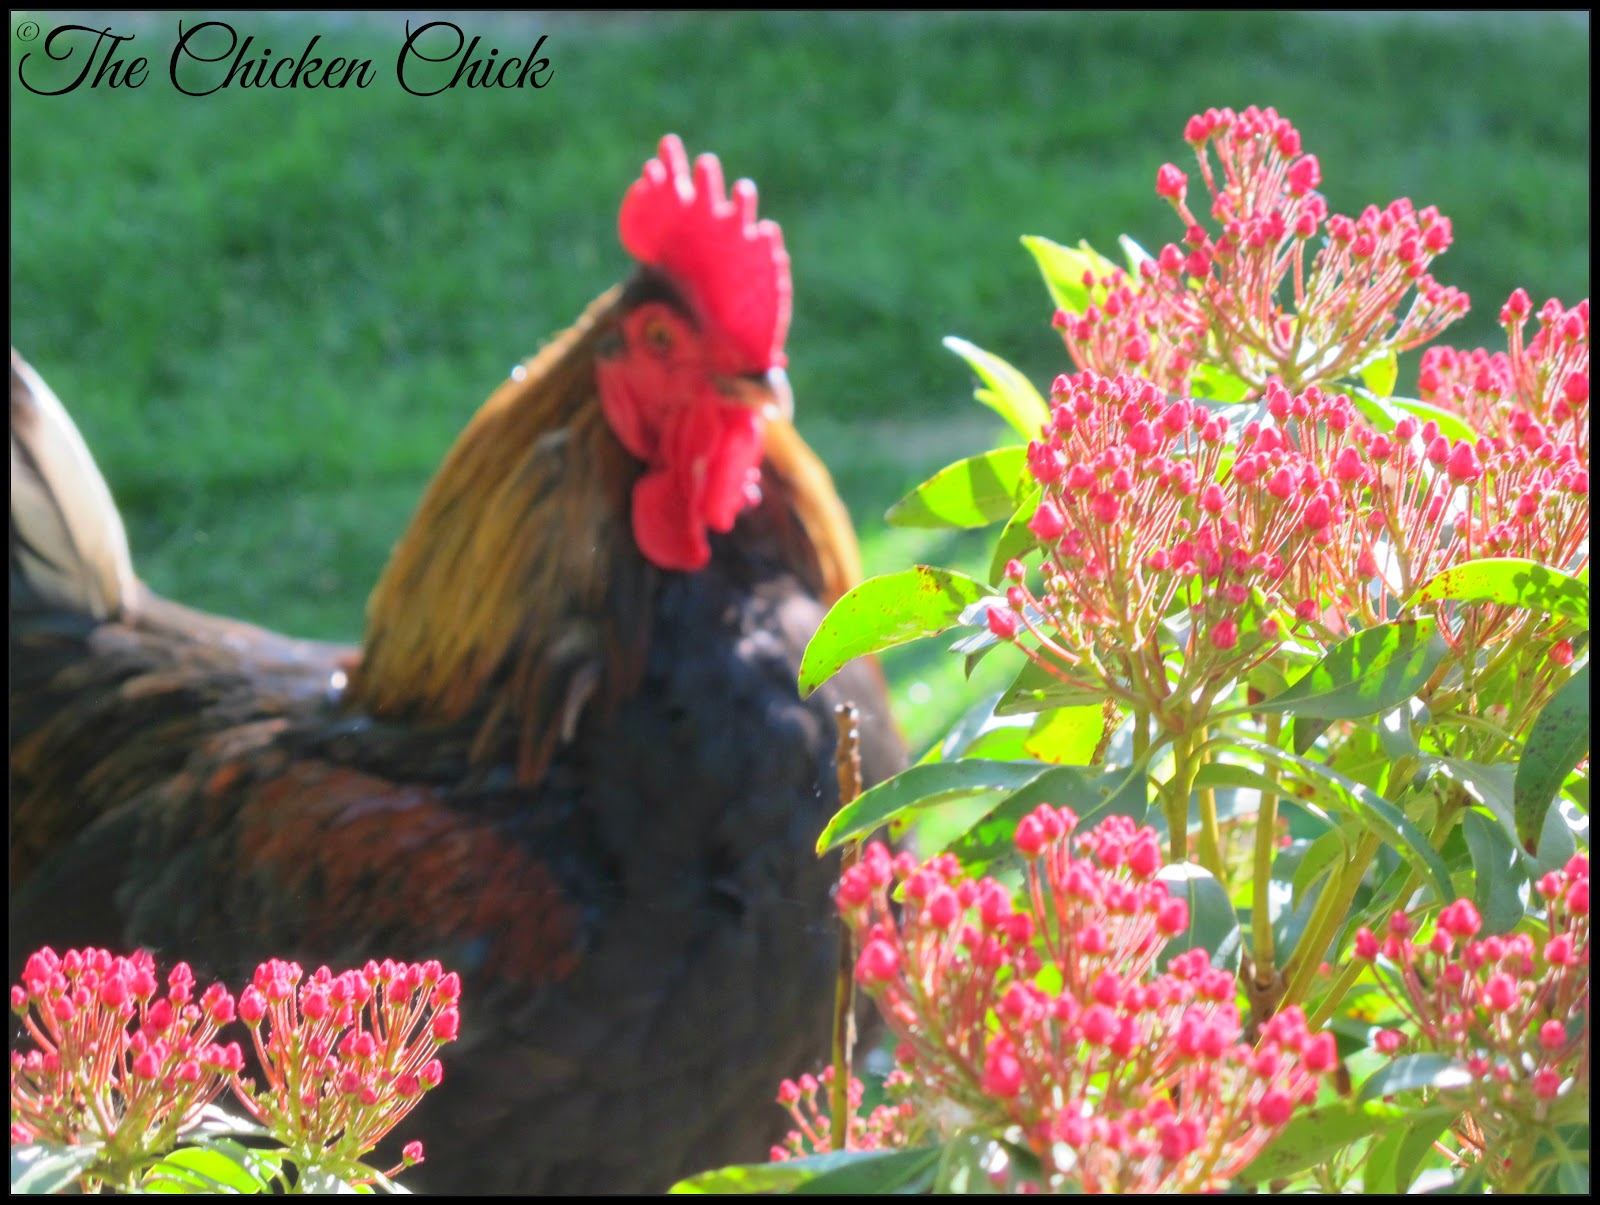 the chicken fighting to legalize backyard chickens